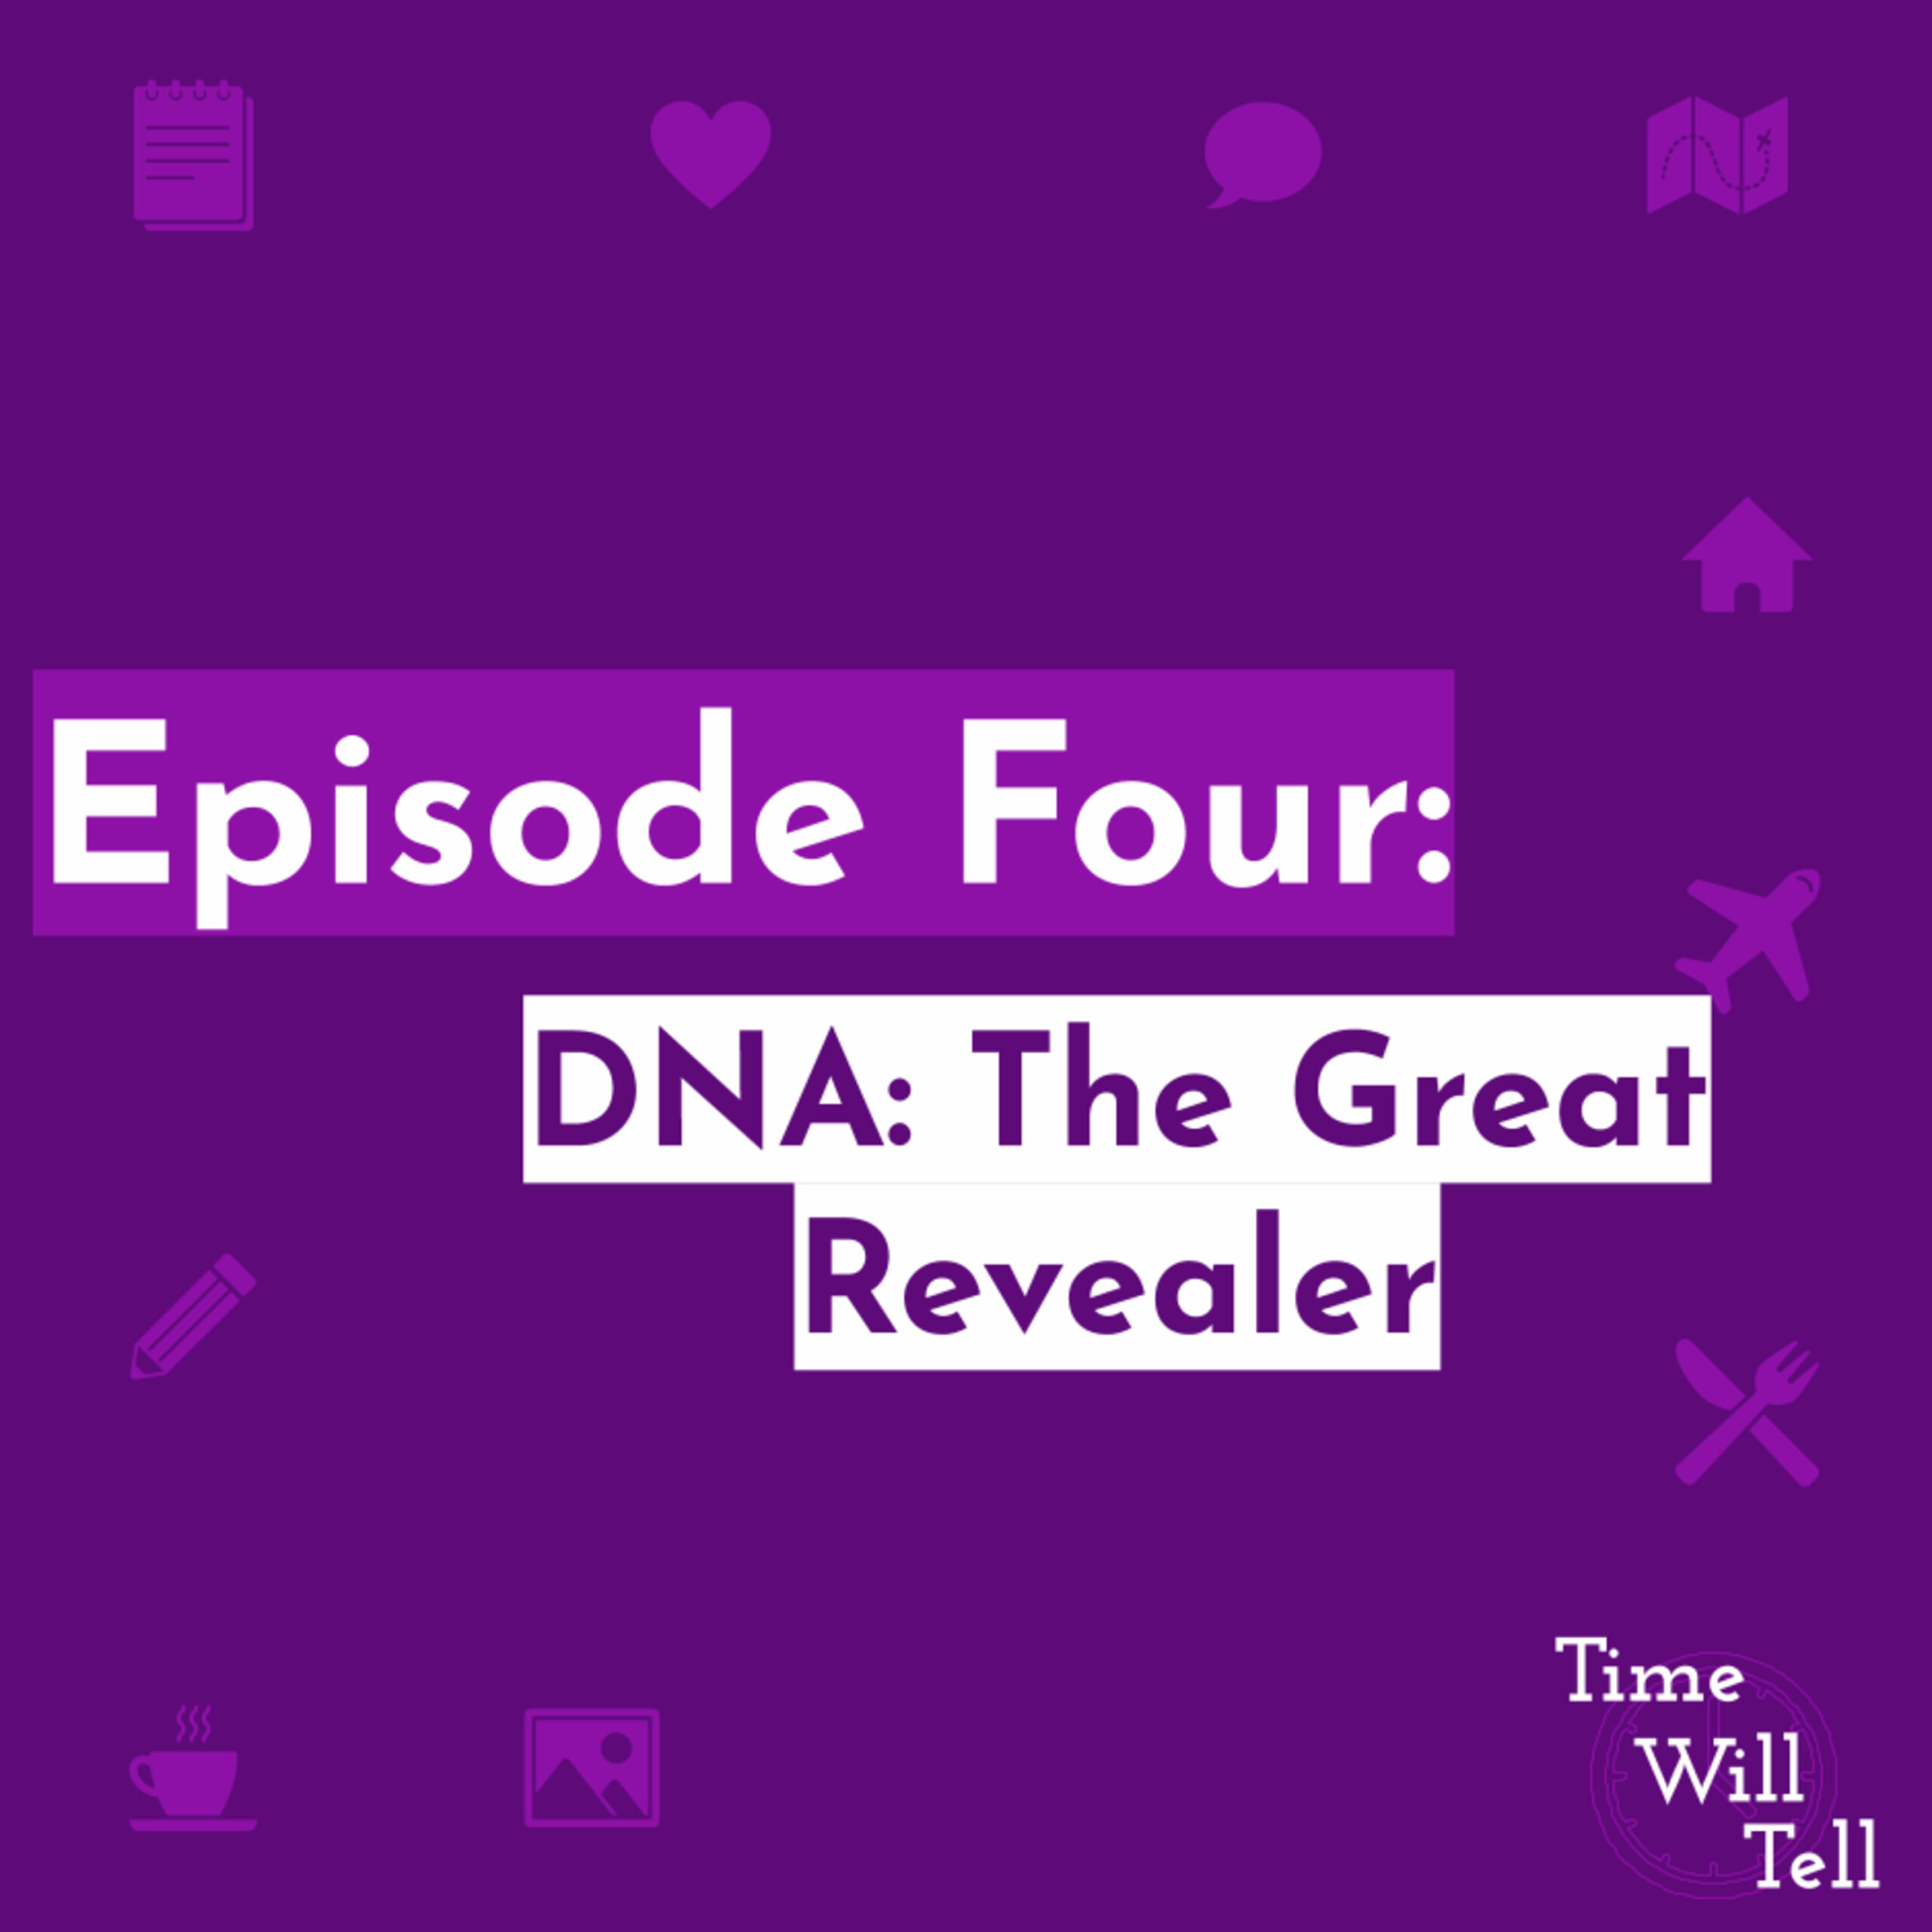 Episode Four: DNA: The Great Revealer